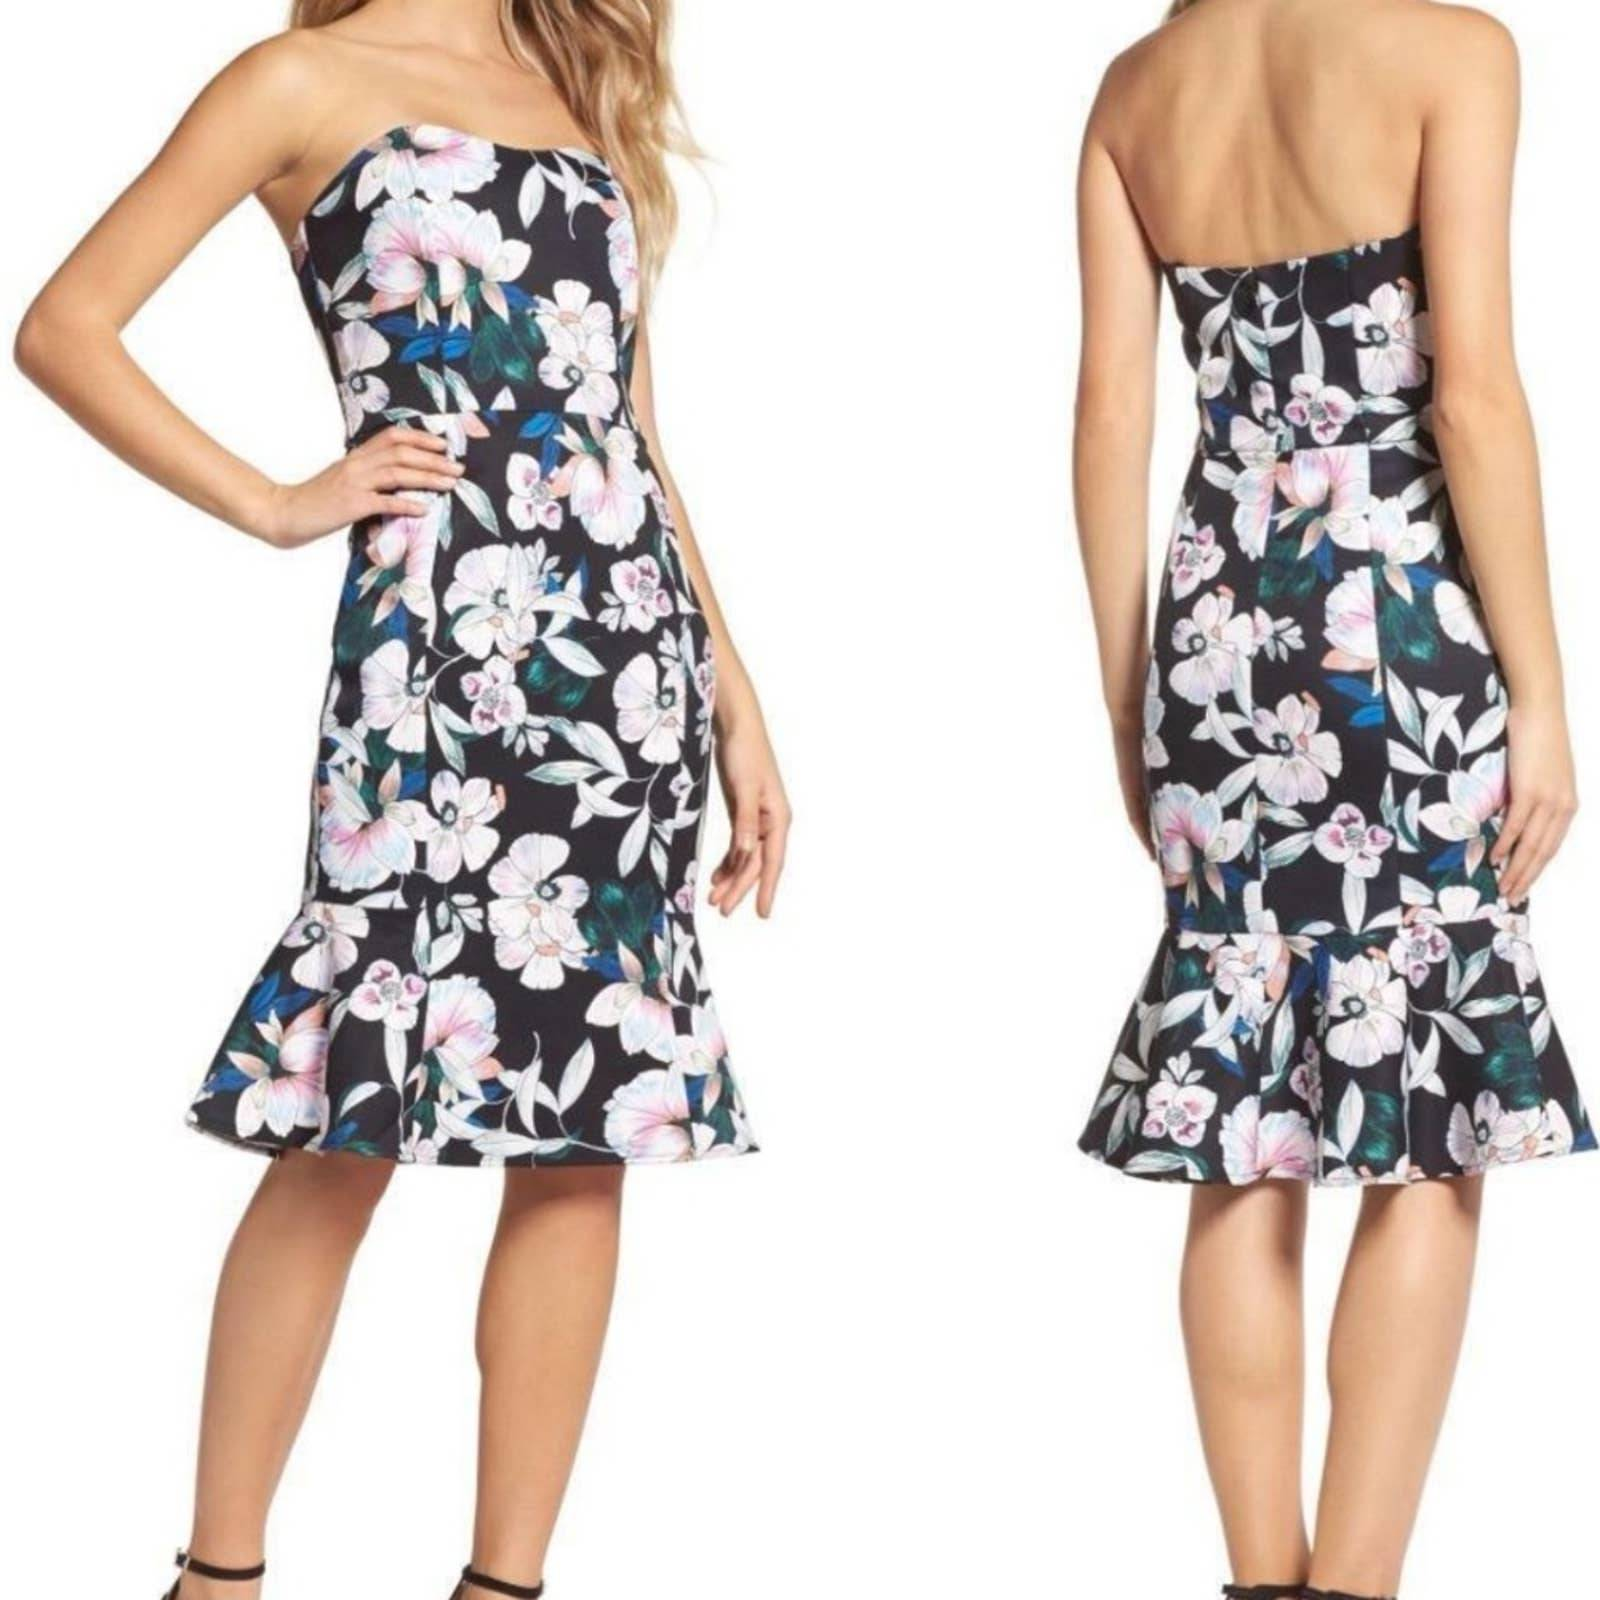 Cooper St. Floral Whimsical Blooms Dress